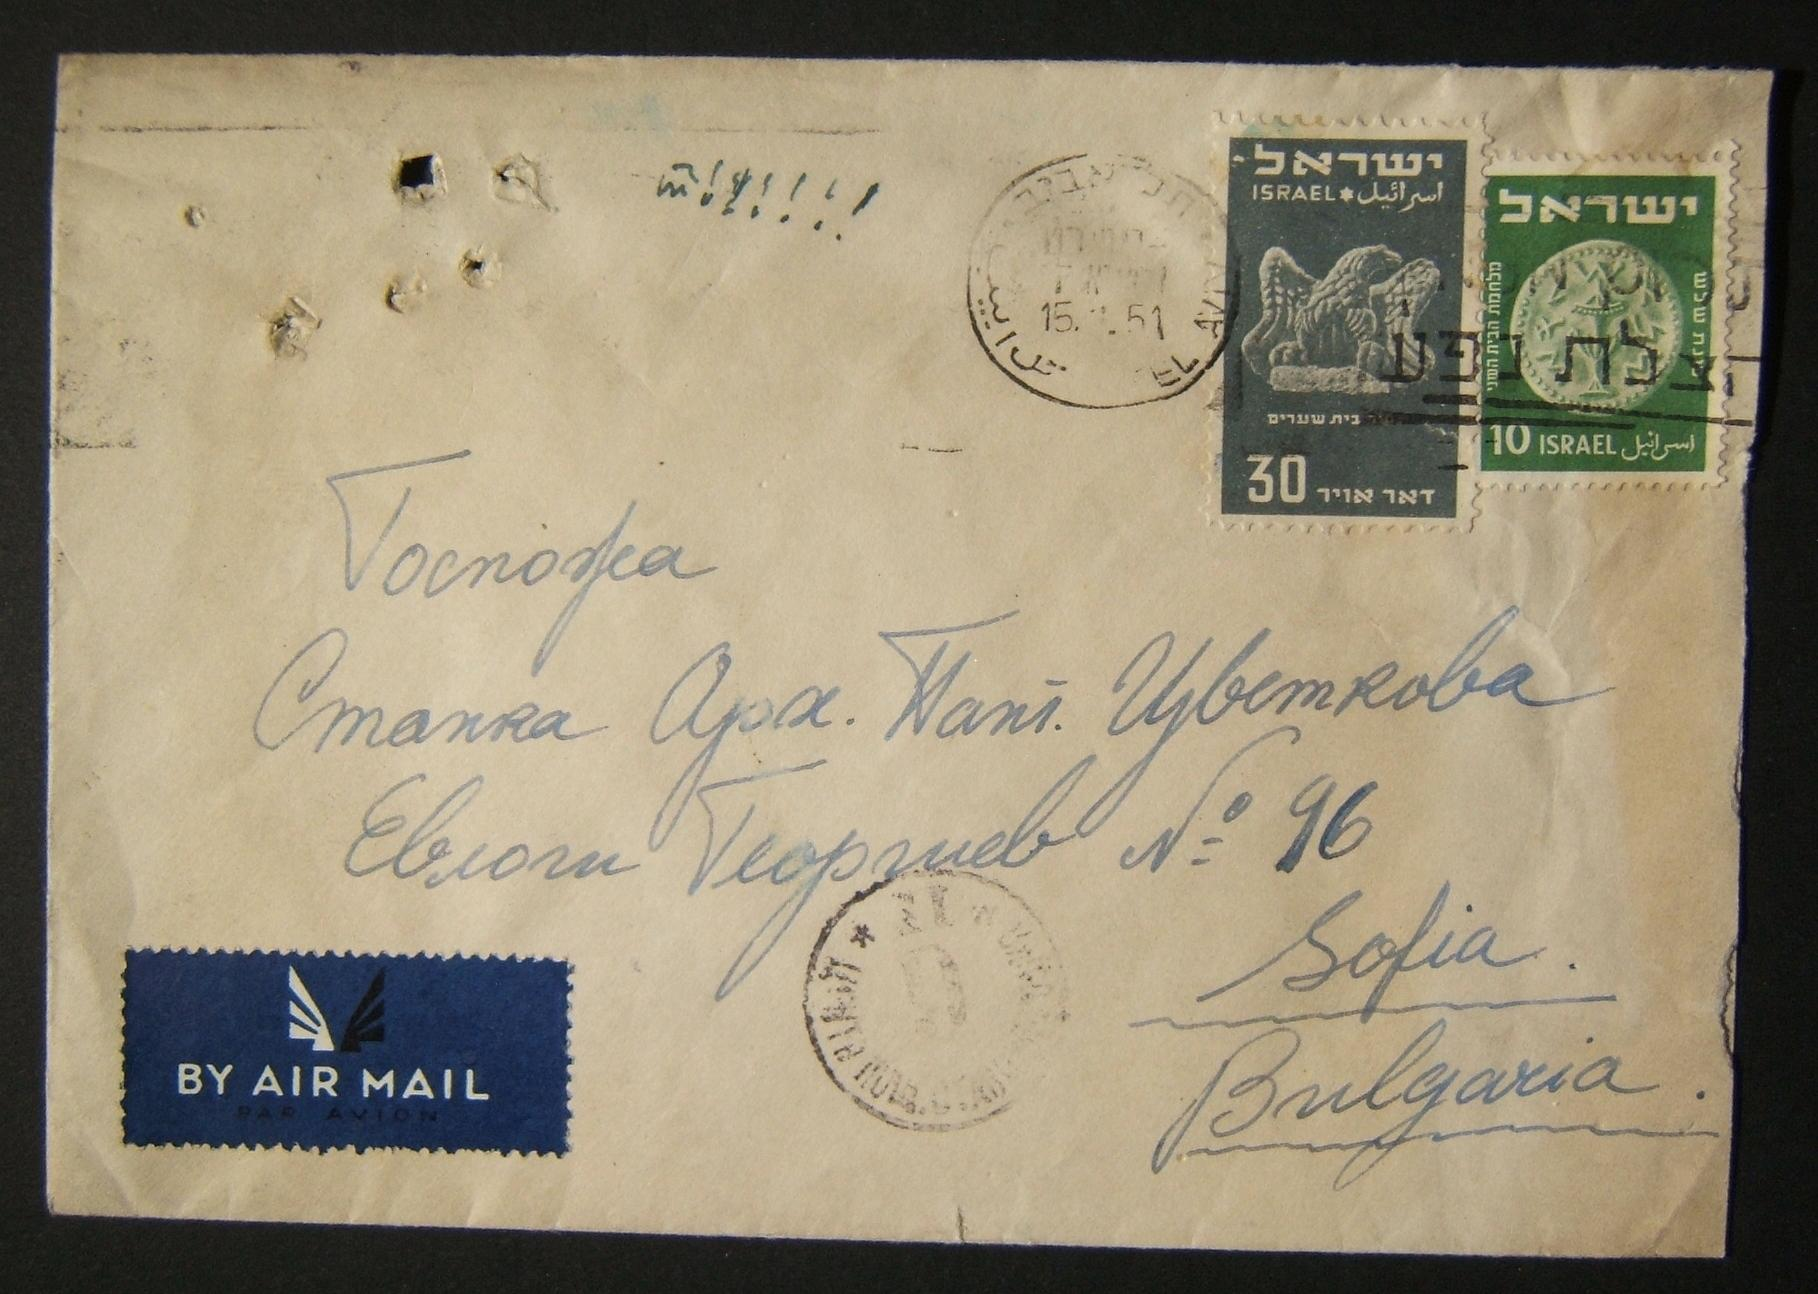 1950 1st airmail / PO's, rates & routes: 15-1-1951 airmail cover ex TLV to BULGARIA franked 40pr at the FA-2a period rate for Europe using mix of 30pr (Ba33) + 10pr 1950 3rd Coinag